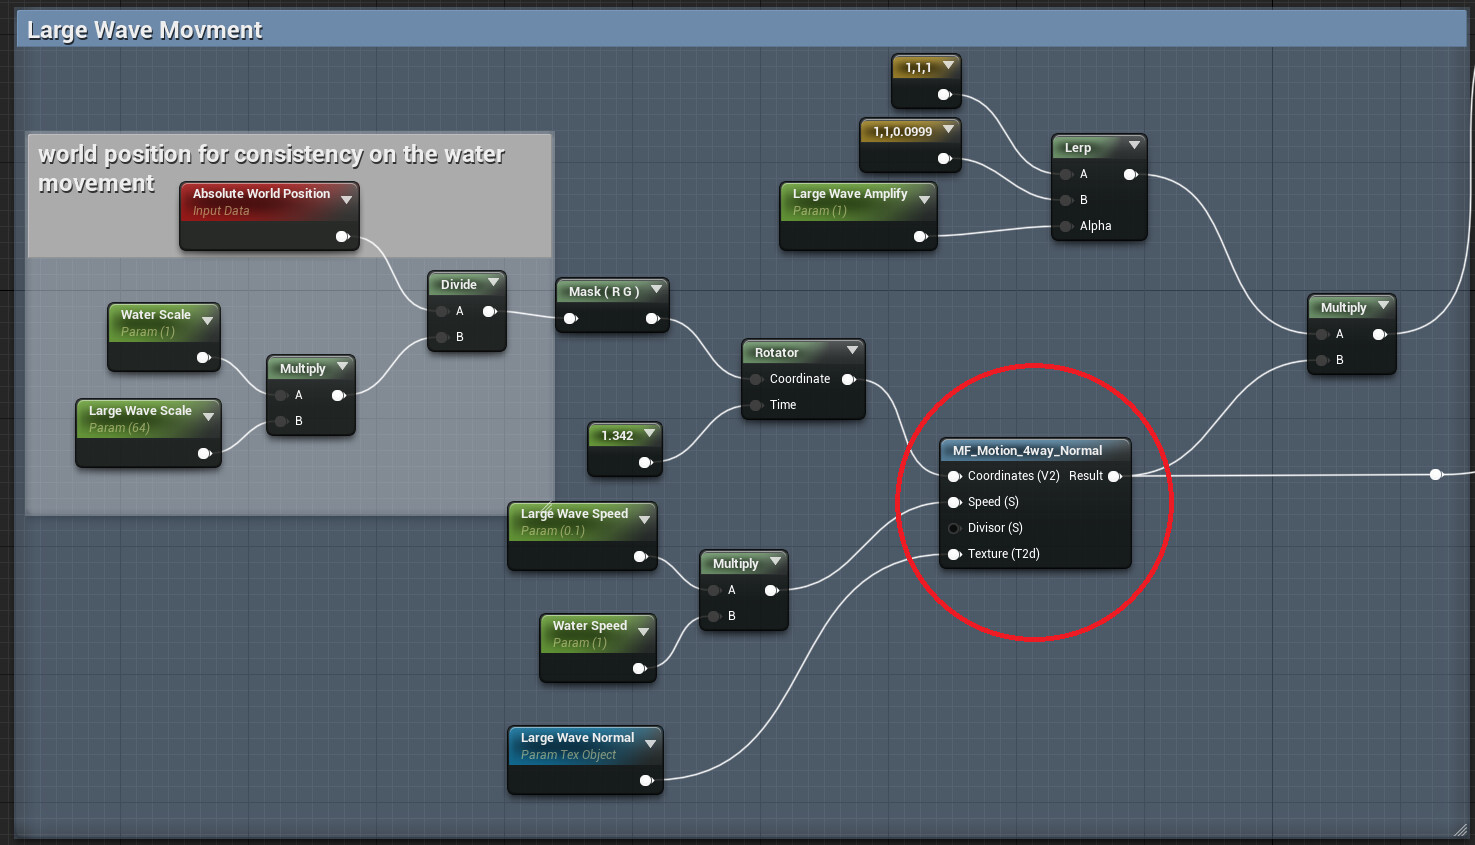 Use of the Material Function in Water Master shader.